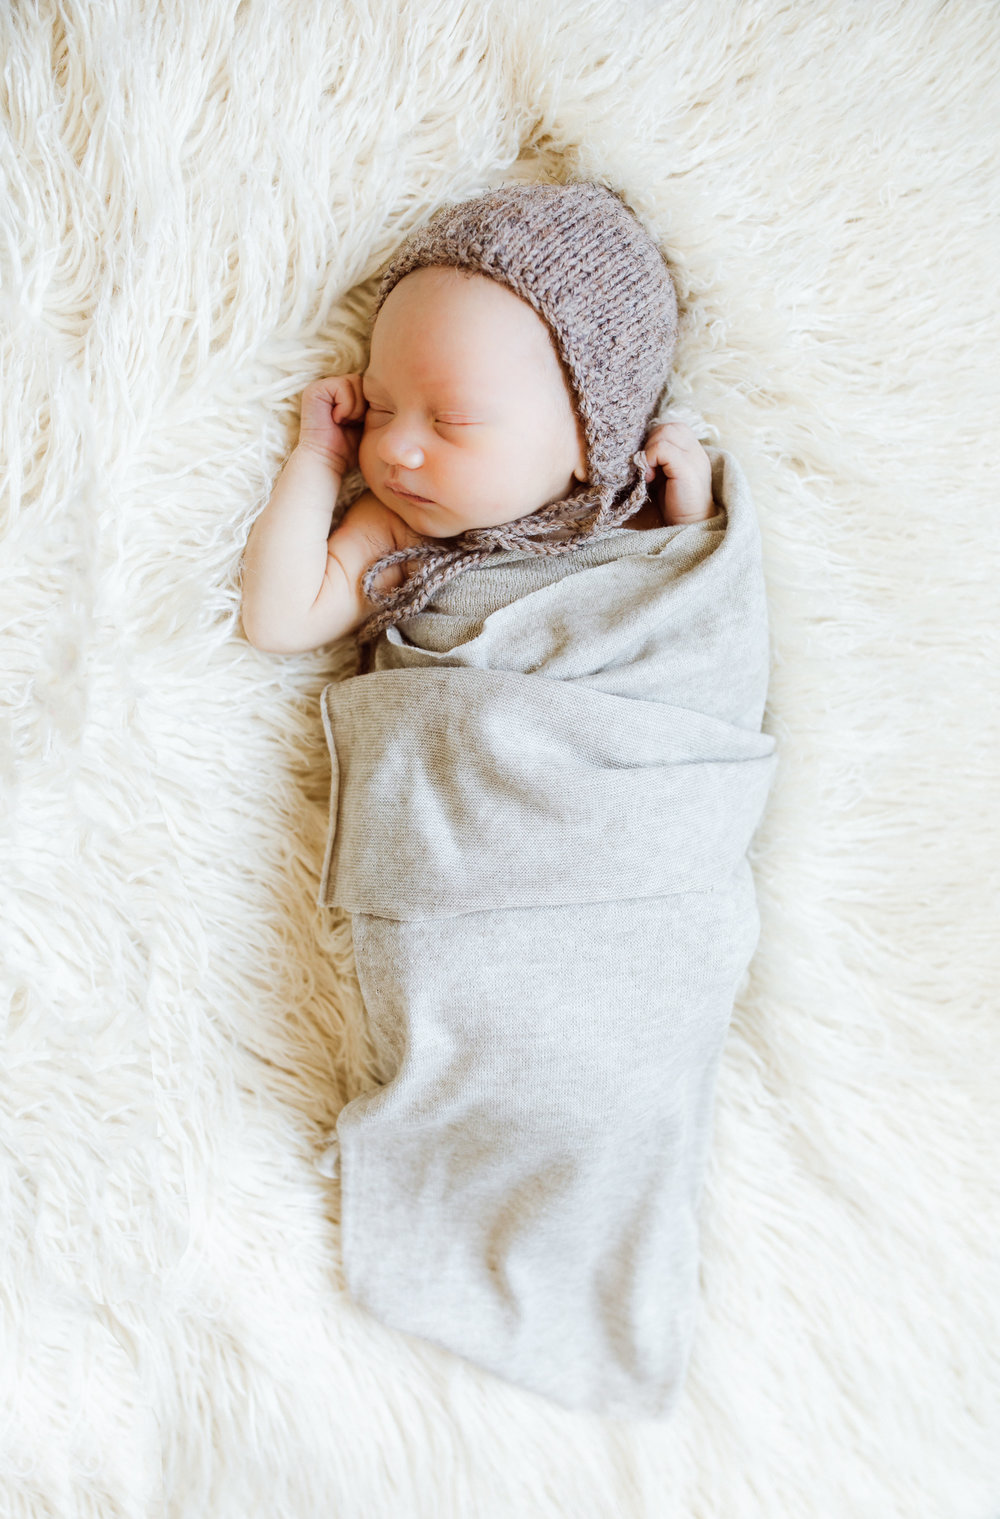 little boy sleeping on a white fluffy blanket - Minnesota Newborn Photographer